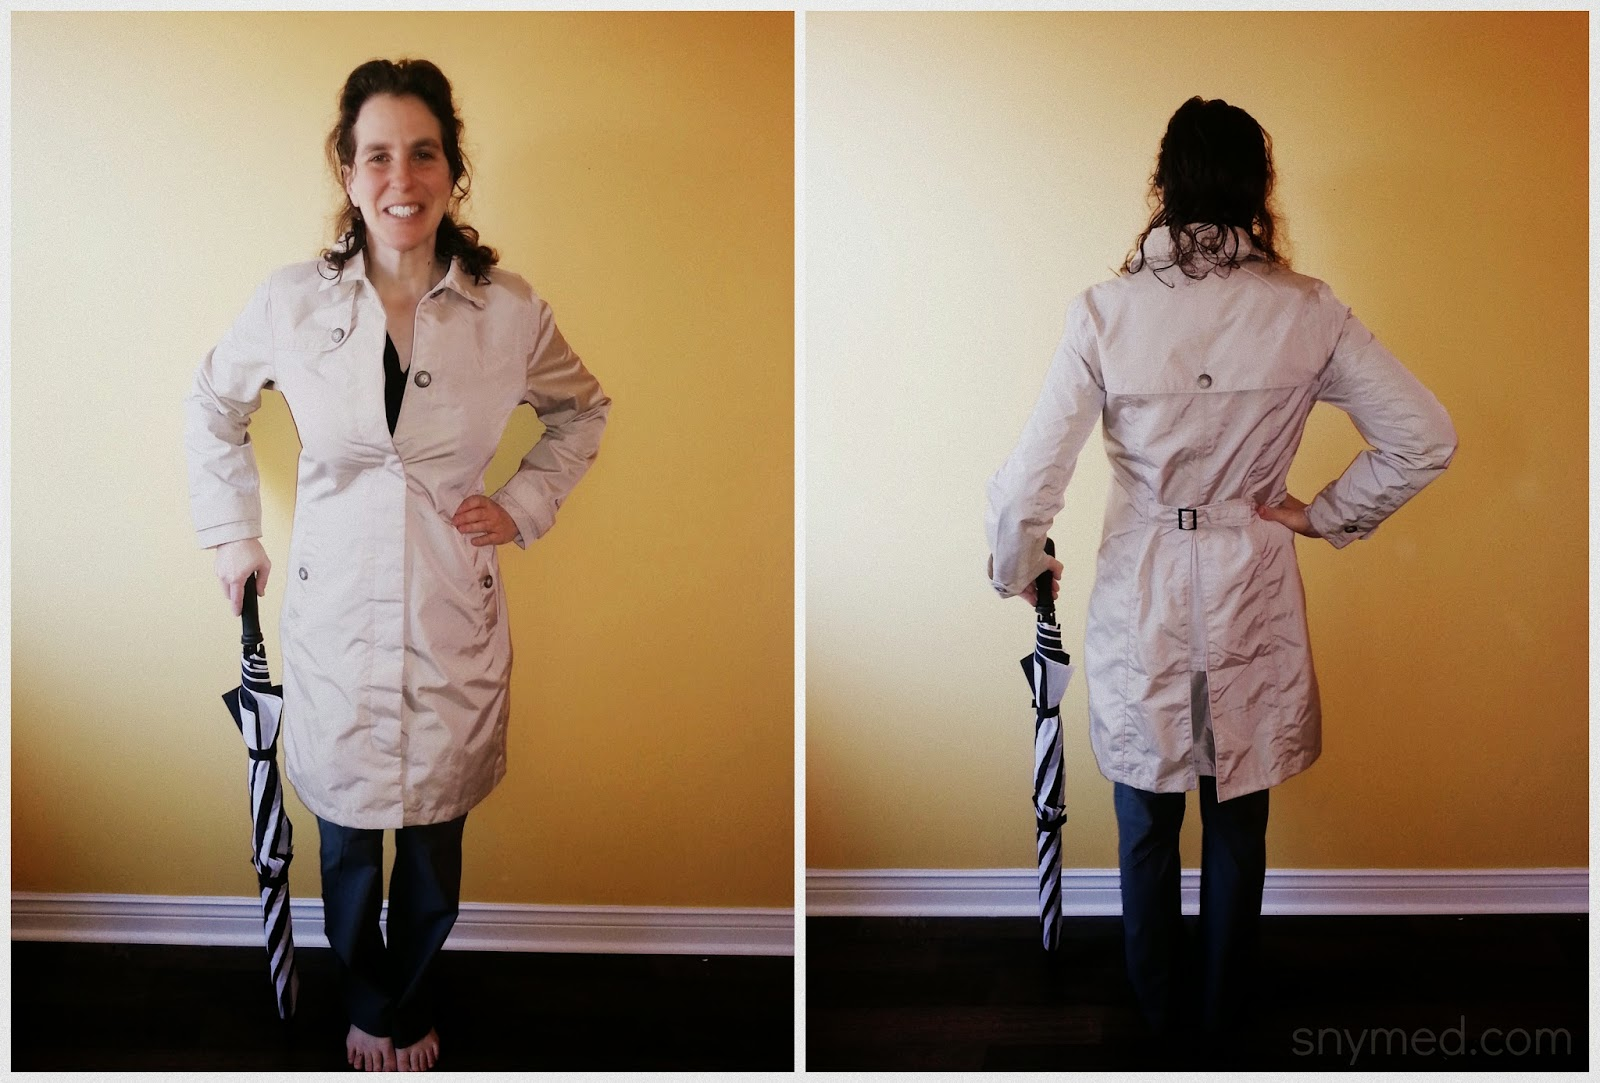 Eddie Bauer 2014 Spring & Summer Collection  A Review! ~ snymed # Sunshower Coat_021838